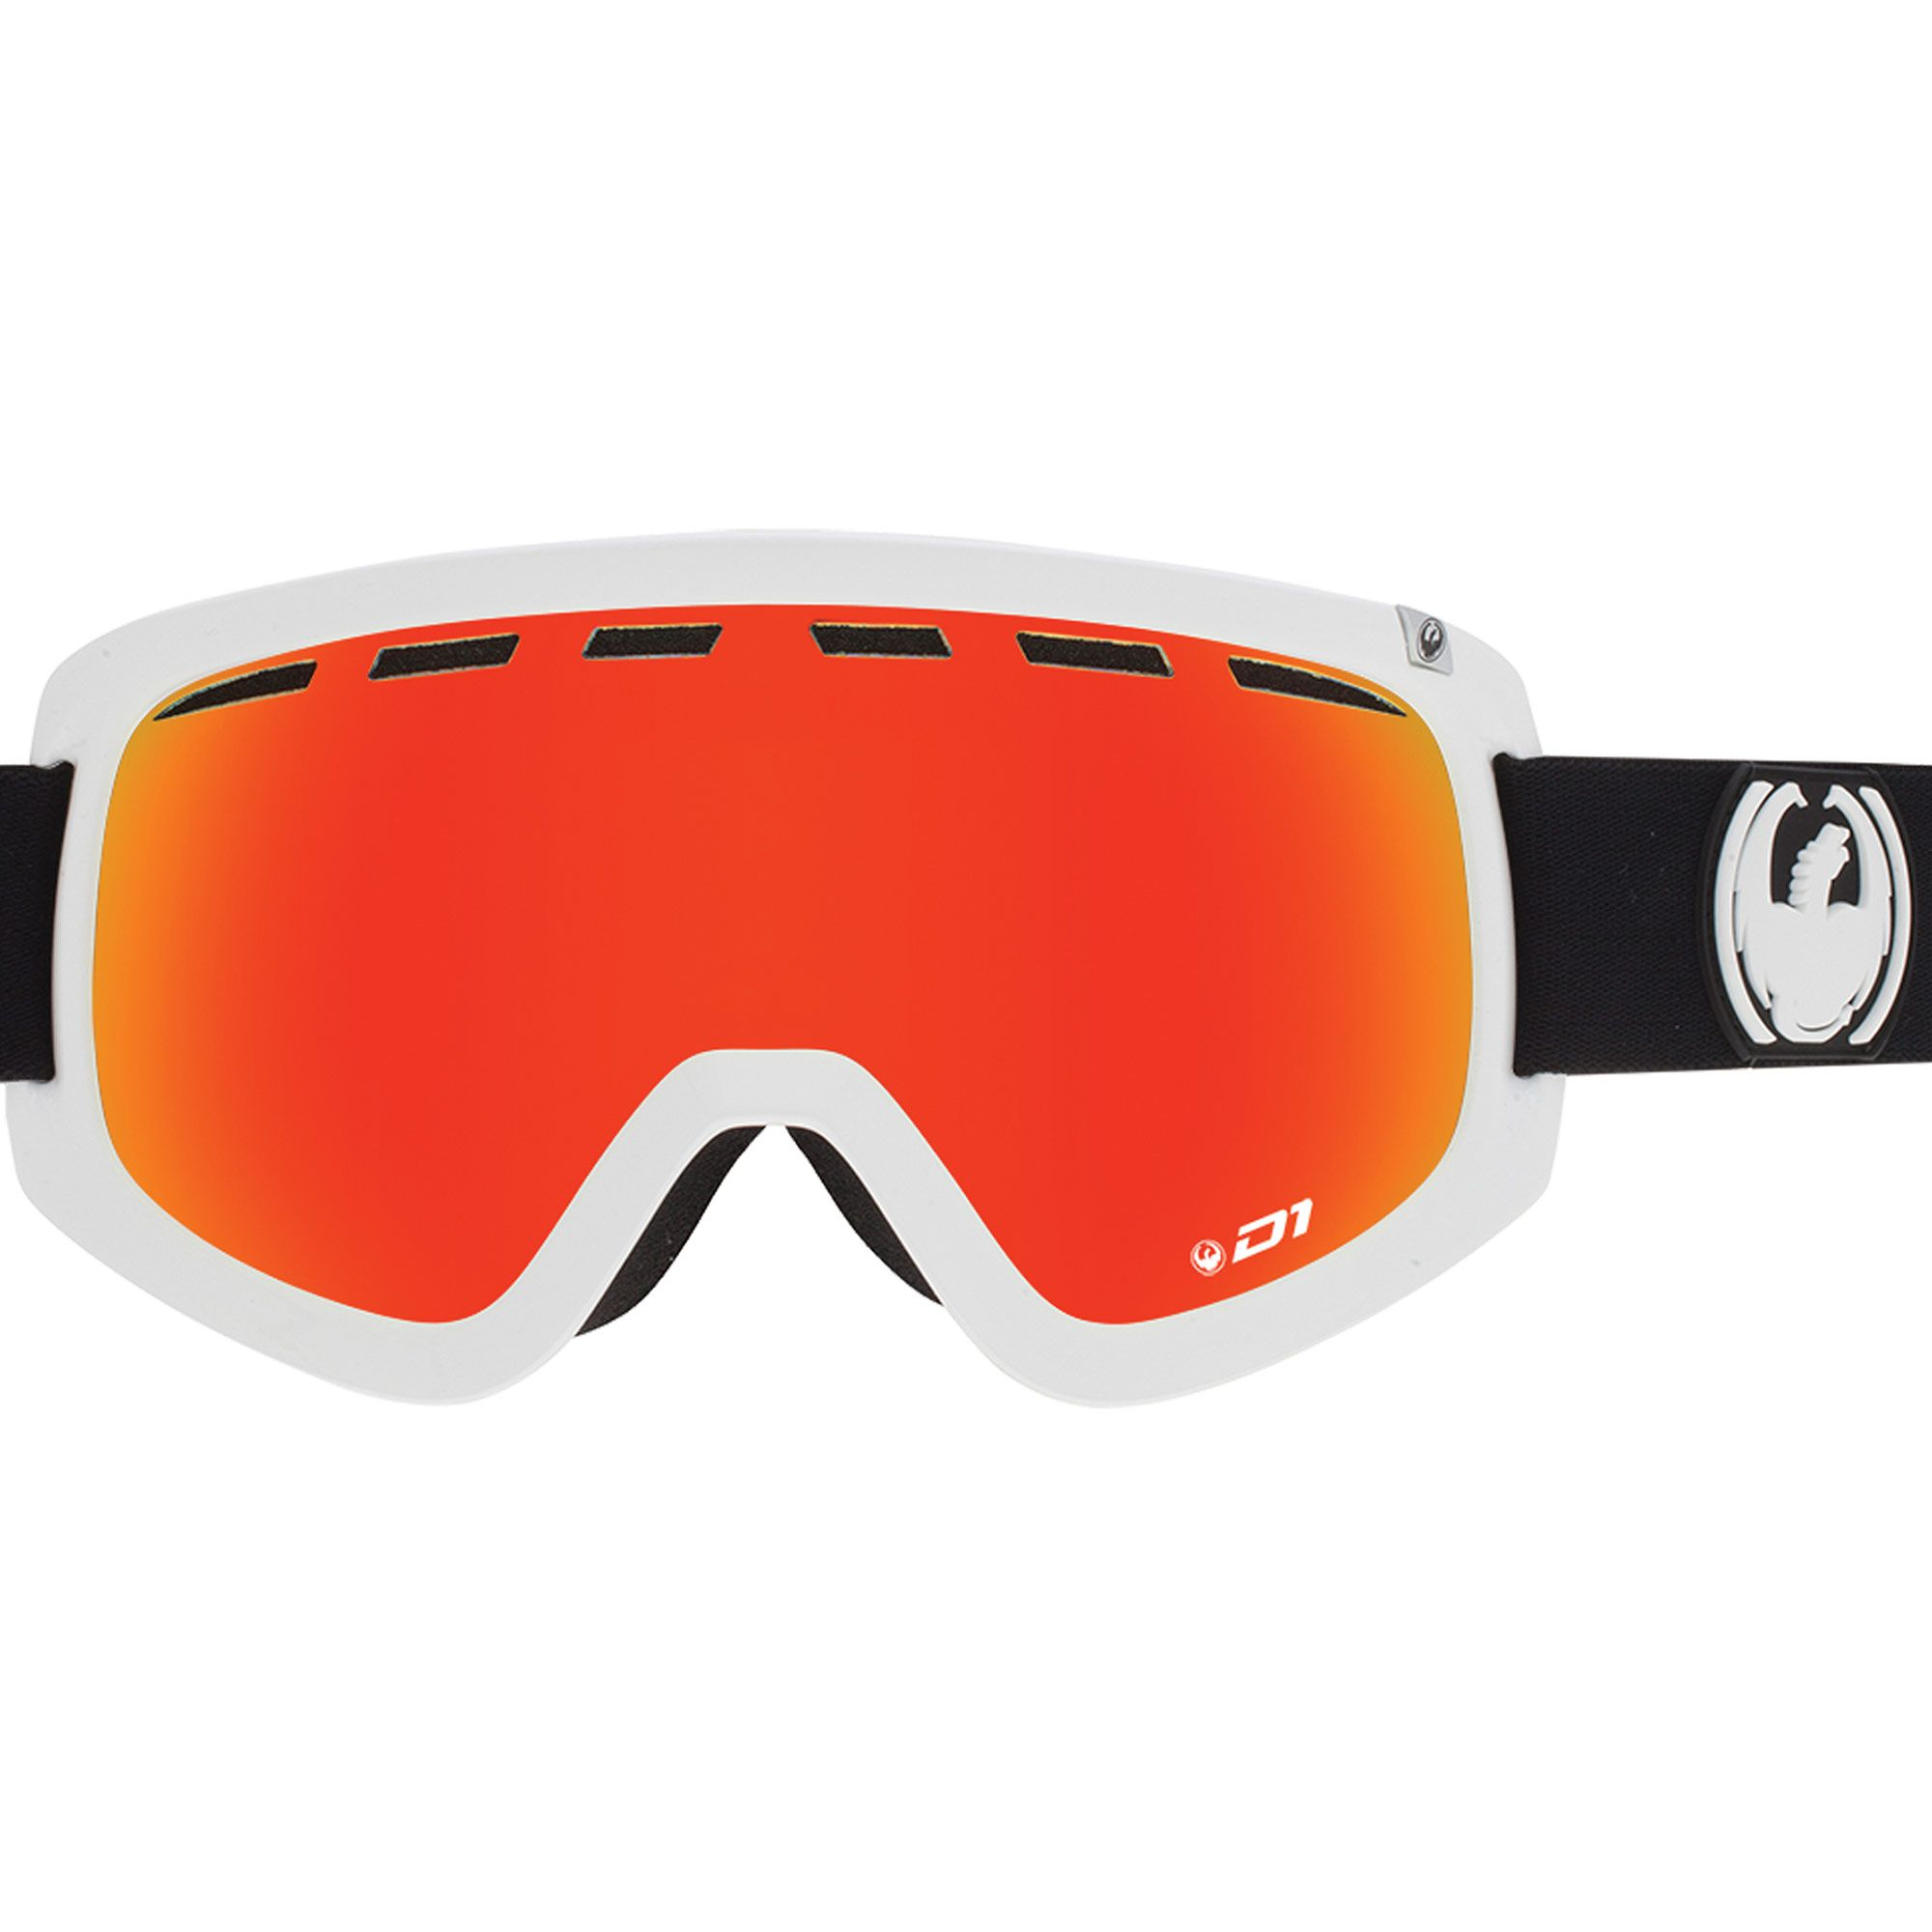 51c903383532 The D1 Goggle is the large fit framed goggle from Dragon. The Inverse white  colour with Red Ion Lens is one of the most popular colours with a bonus  lens.